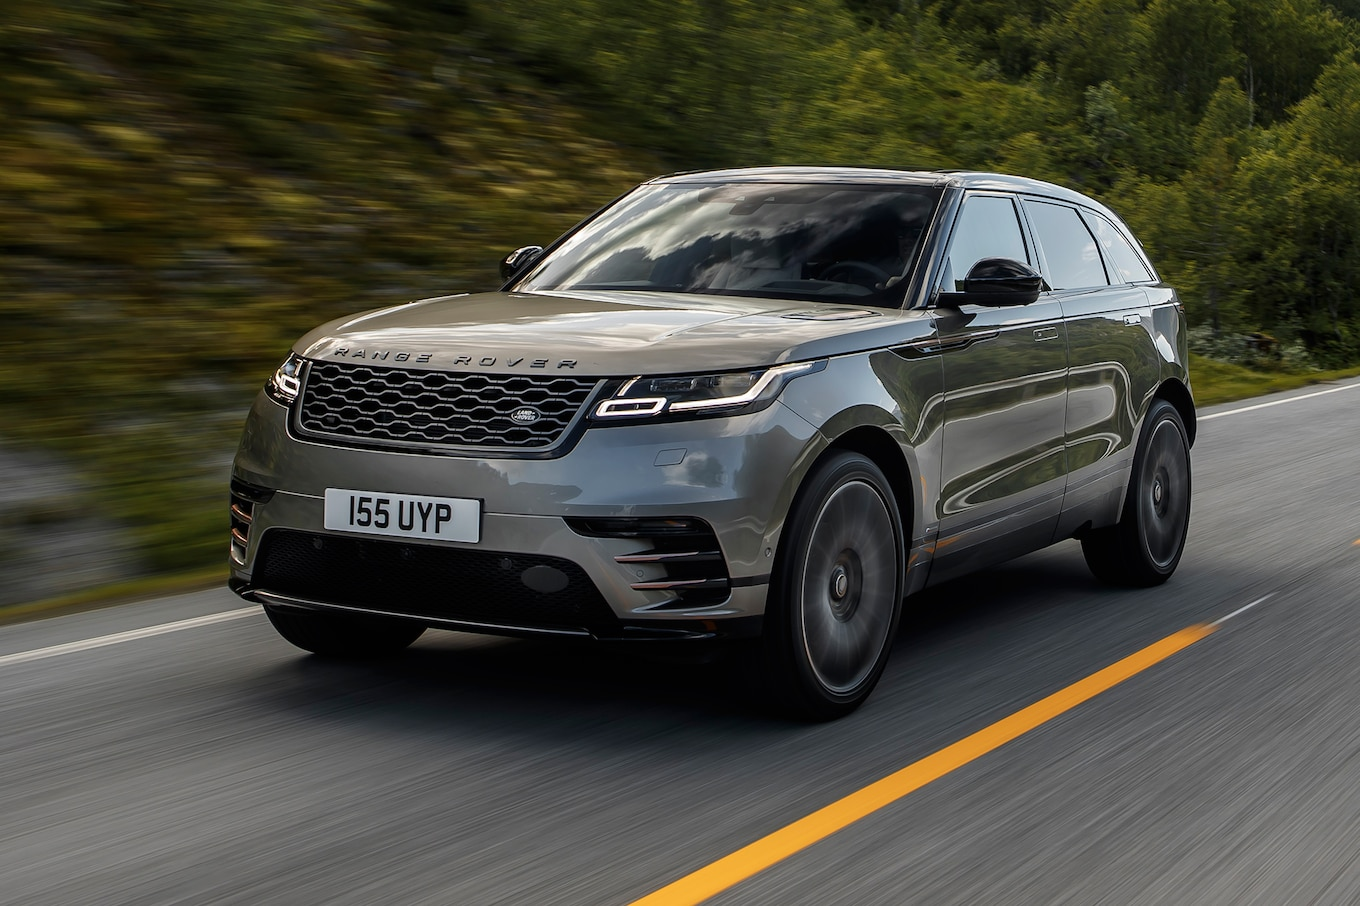 Range Rover Car Wallpaper 2018 Range Rover Velar V 6 First Drive Review